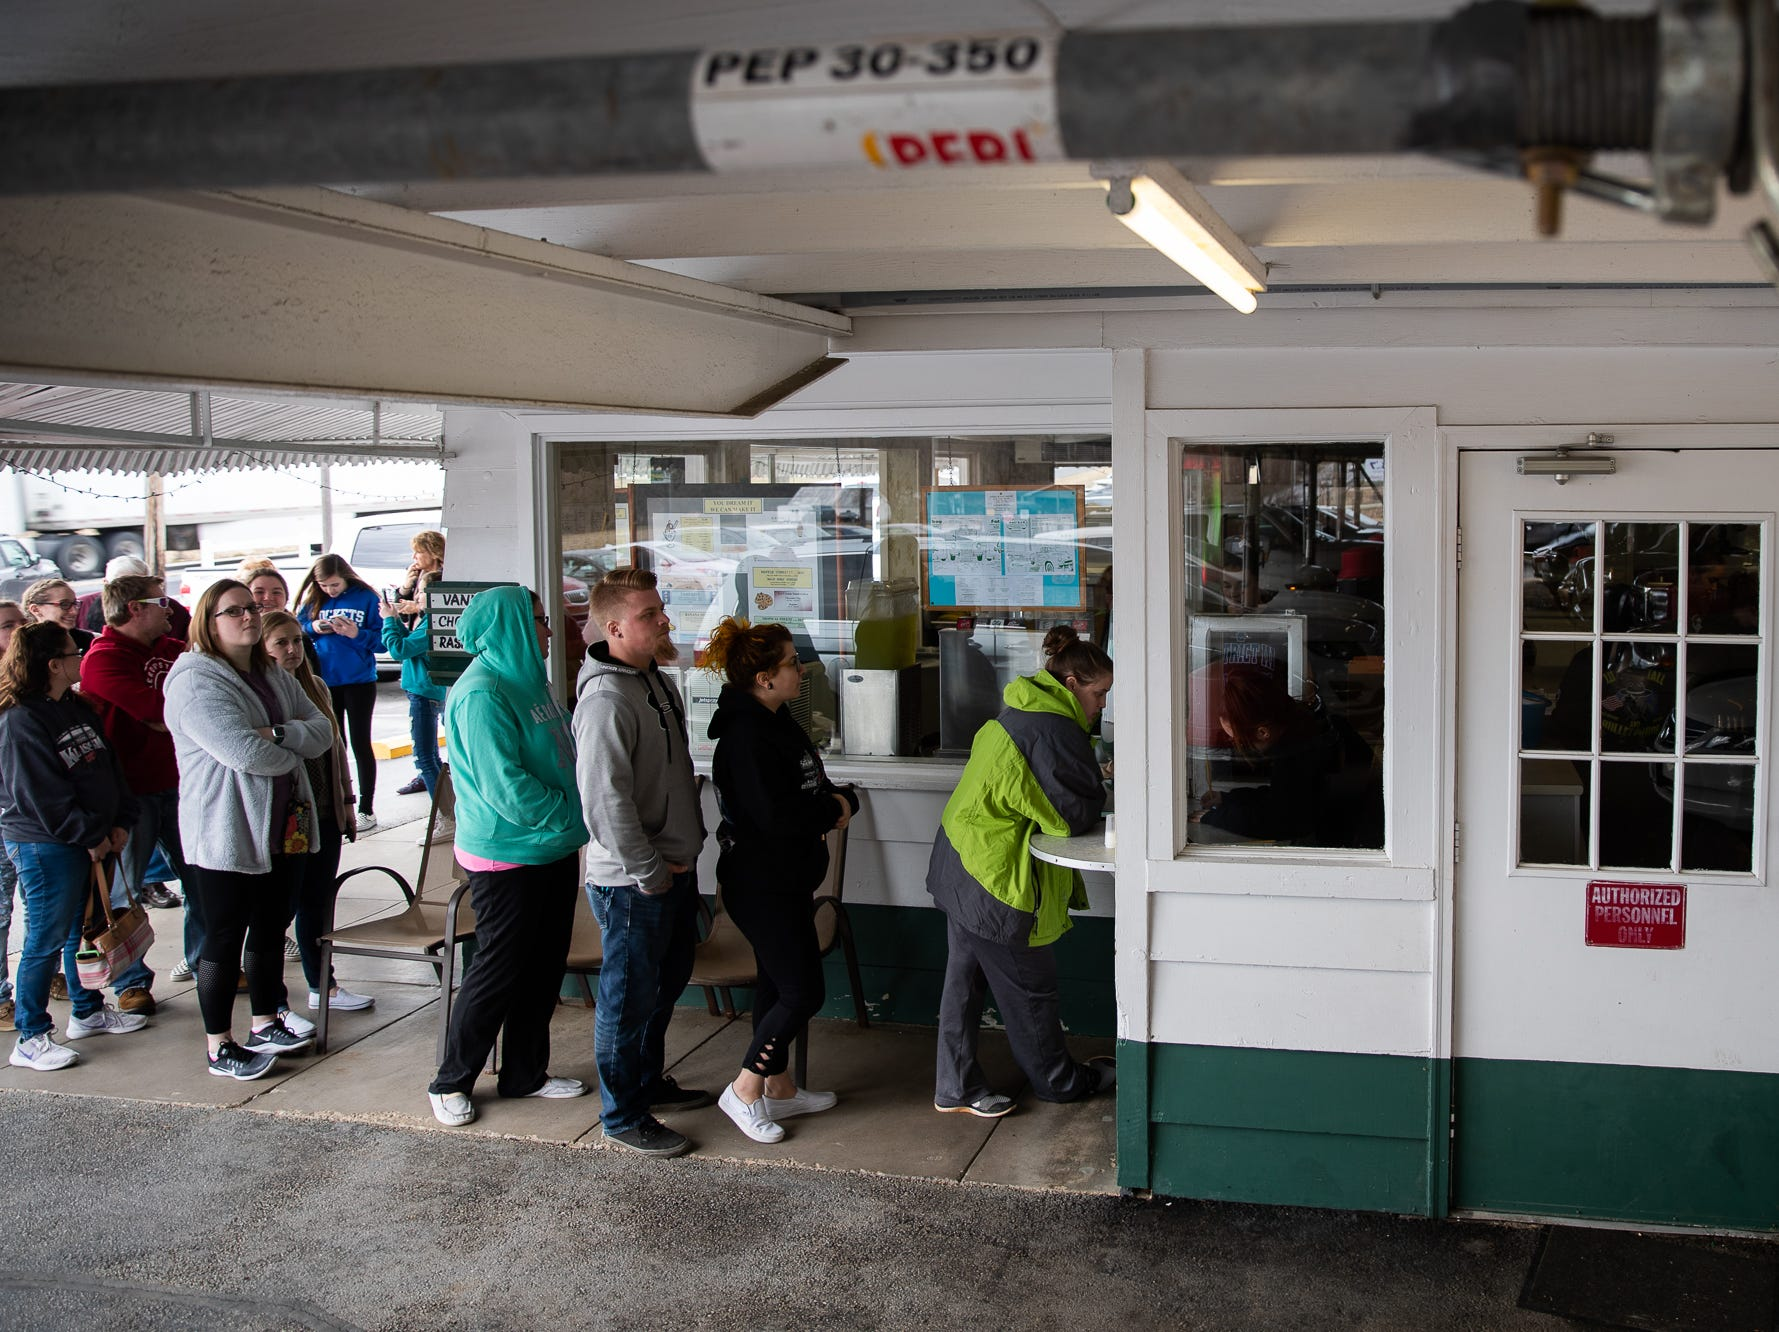 Customers line up to order during Tropical Treat's first day of business for the 2019 season, Wednesday, March 13, 2019, in Berwick Township.